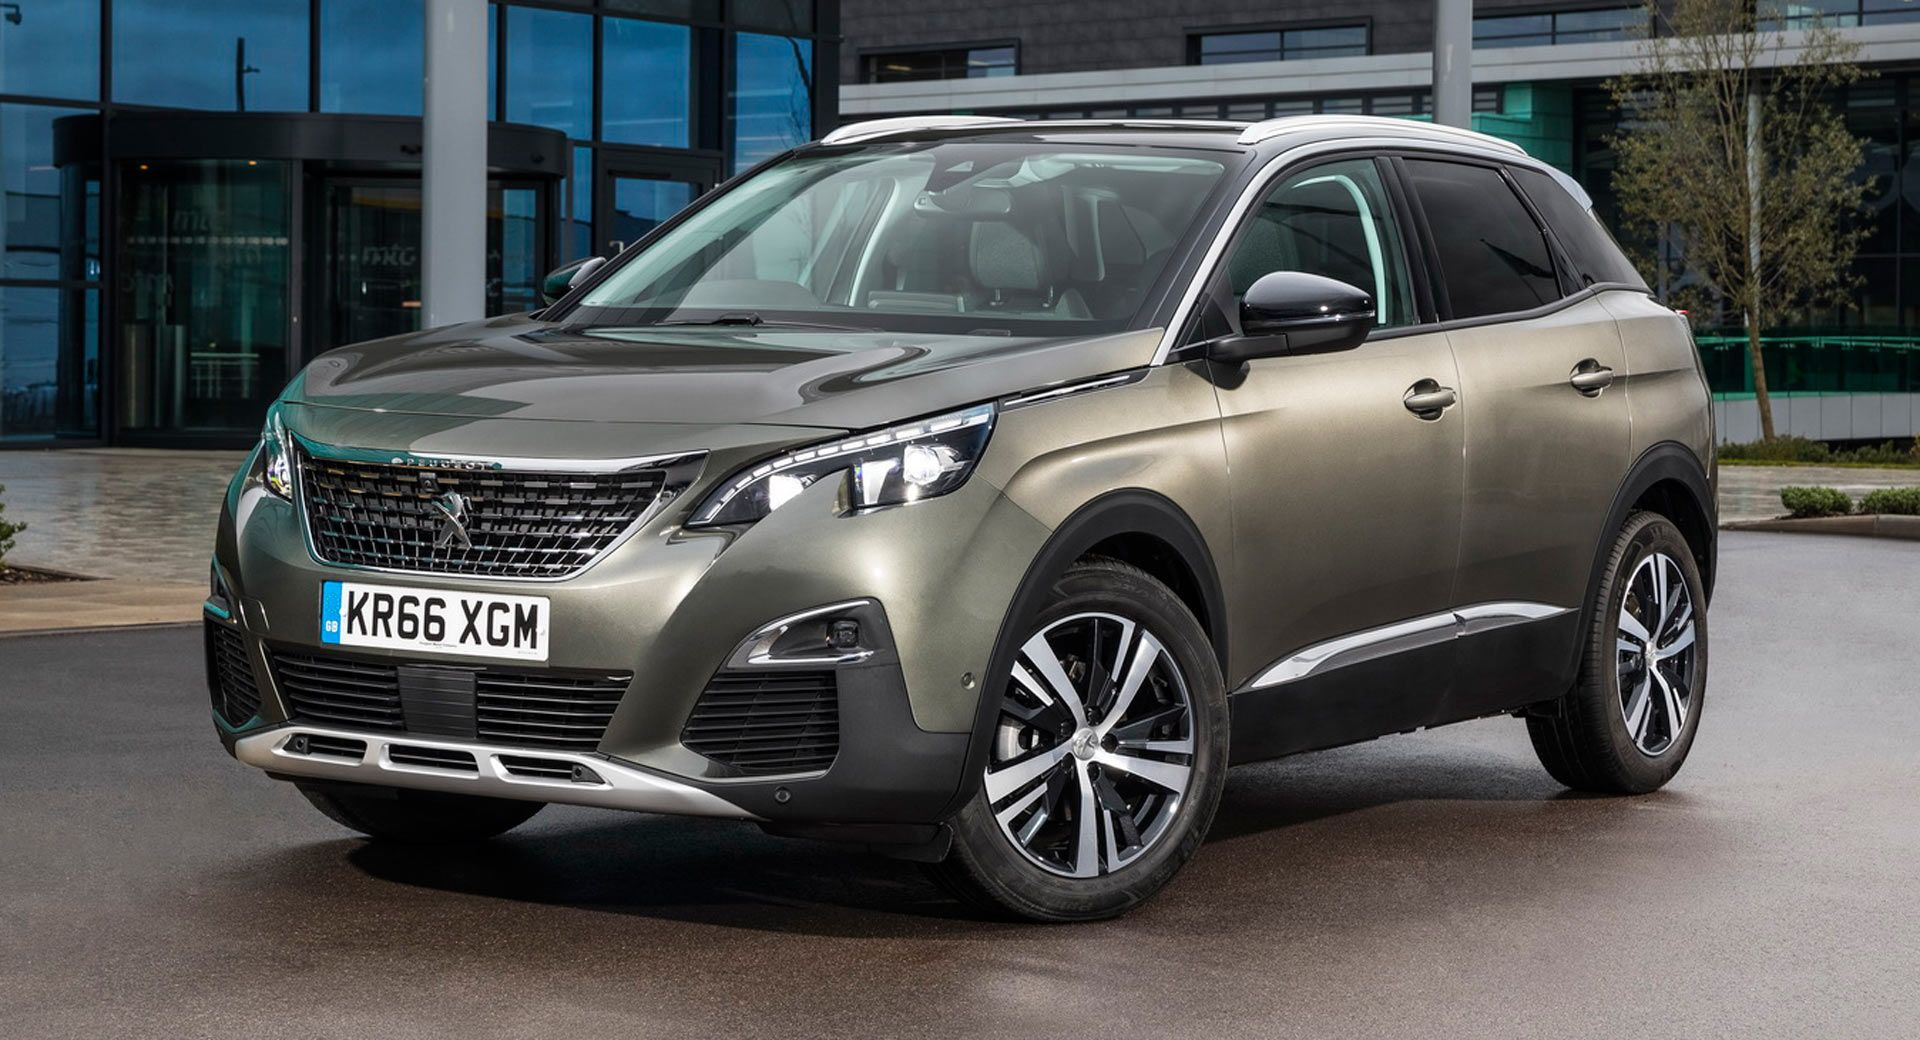 Five Seat Peugeot 4008 Arriving In 2020 Peugeot 3008 Peugeot Suv